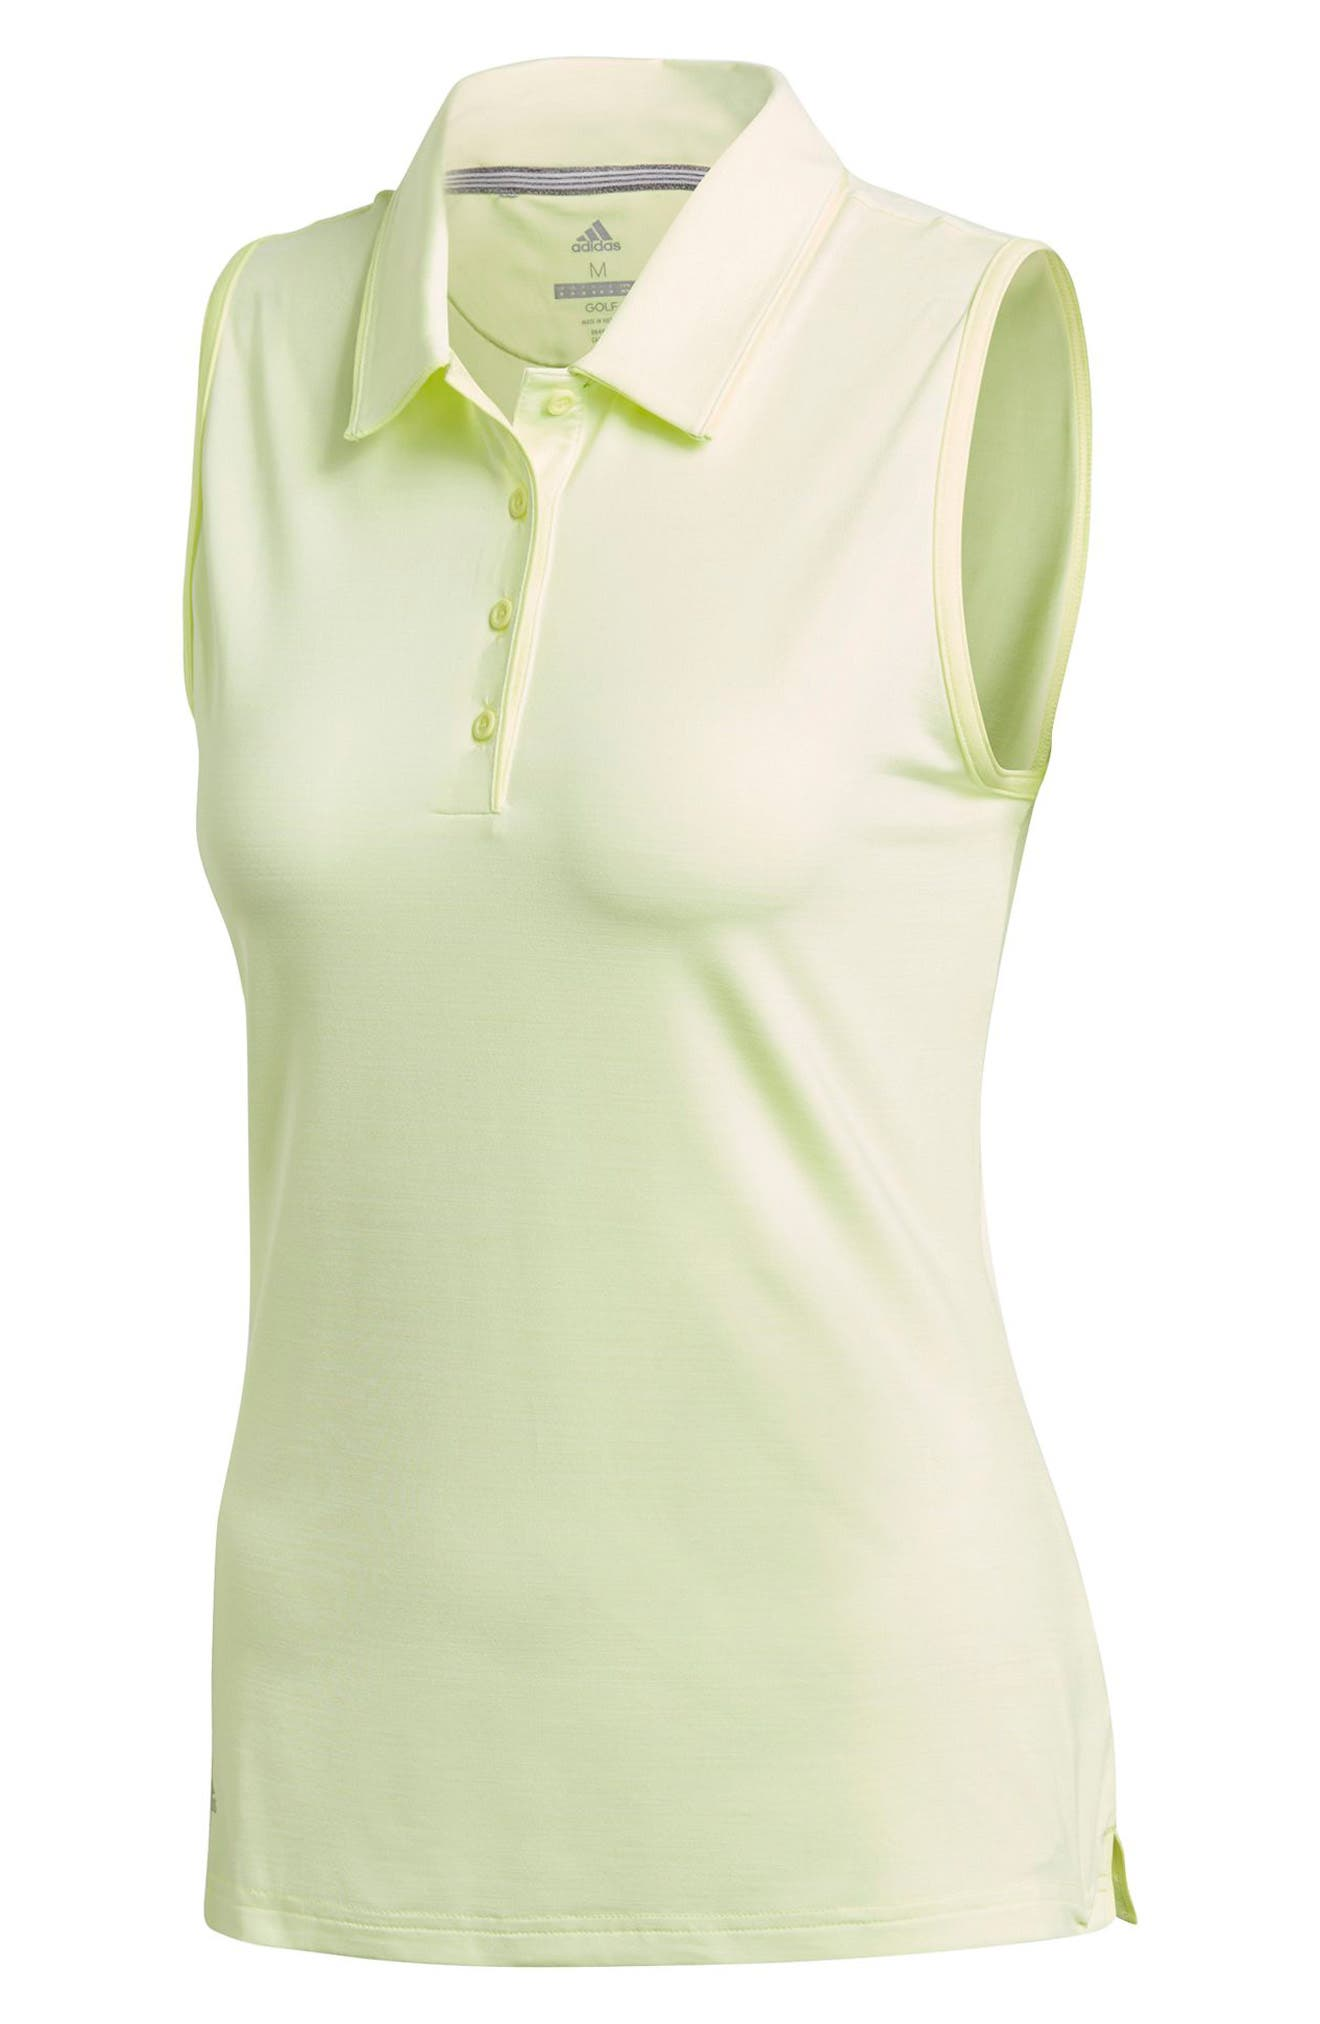 Ultimate365 Sleeveless Golf Polo,                             Alternate thumbnail 6, color,                             FROZEN YELLOW